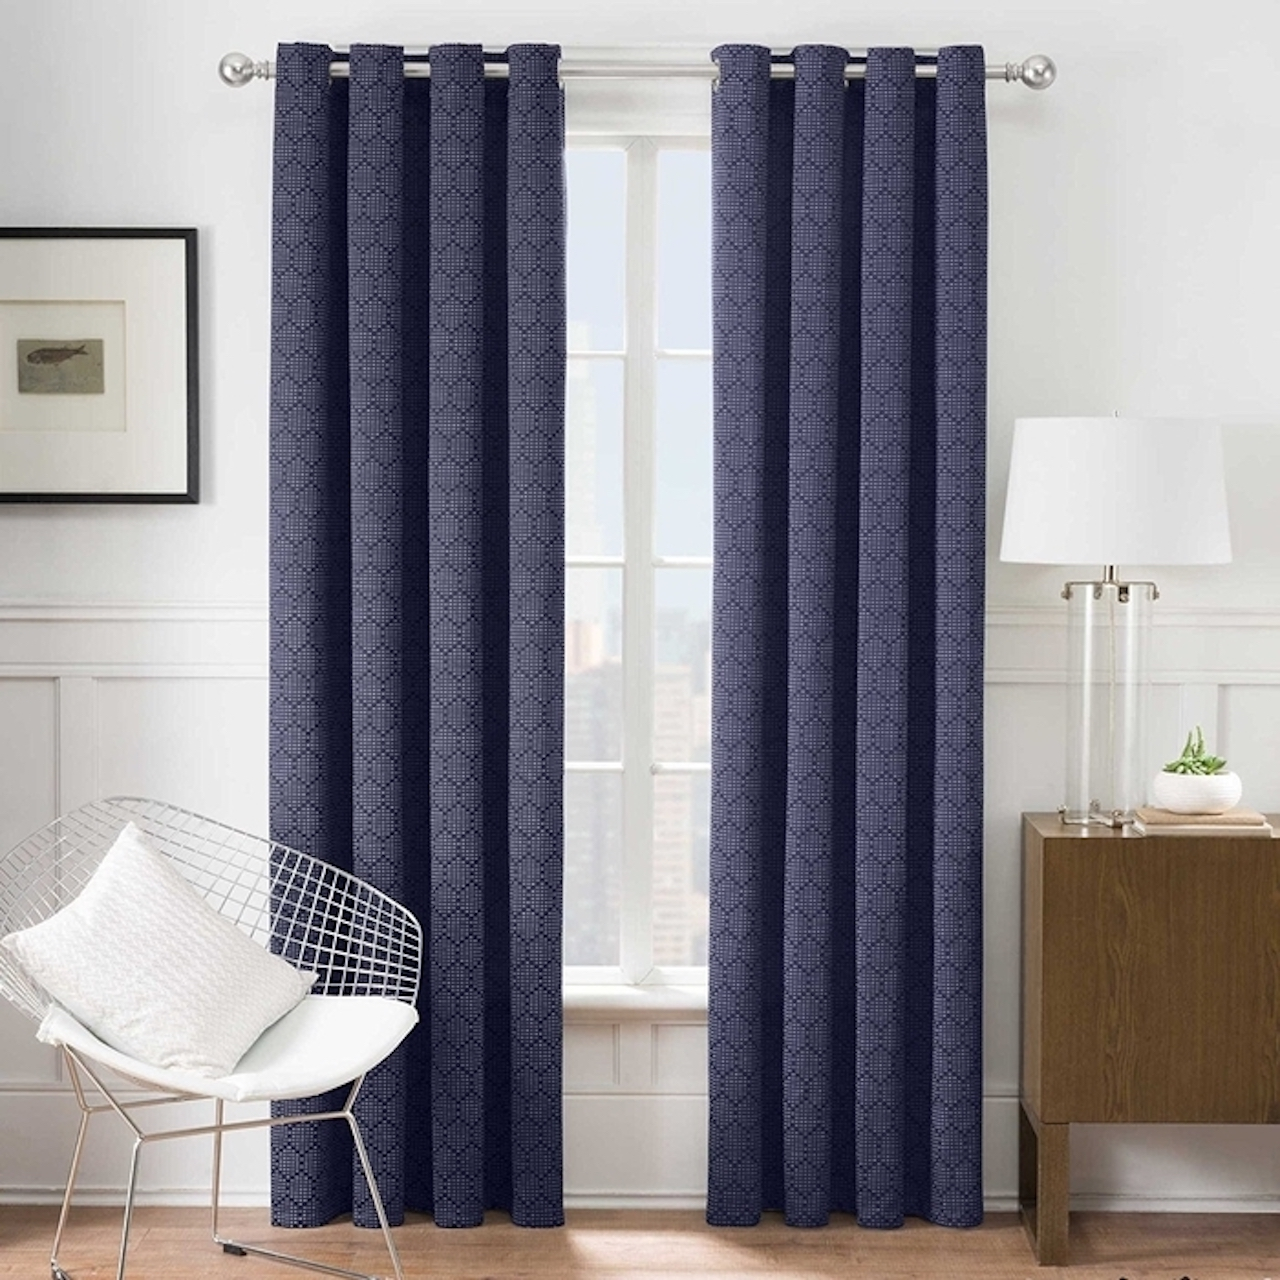 "Times Square® 63"" L, 1 Grommet Window Curtain Panel - Navy - image 1 of 1"